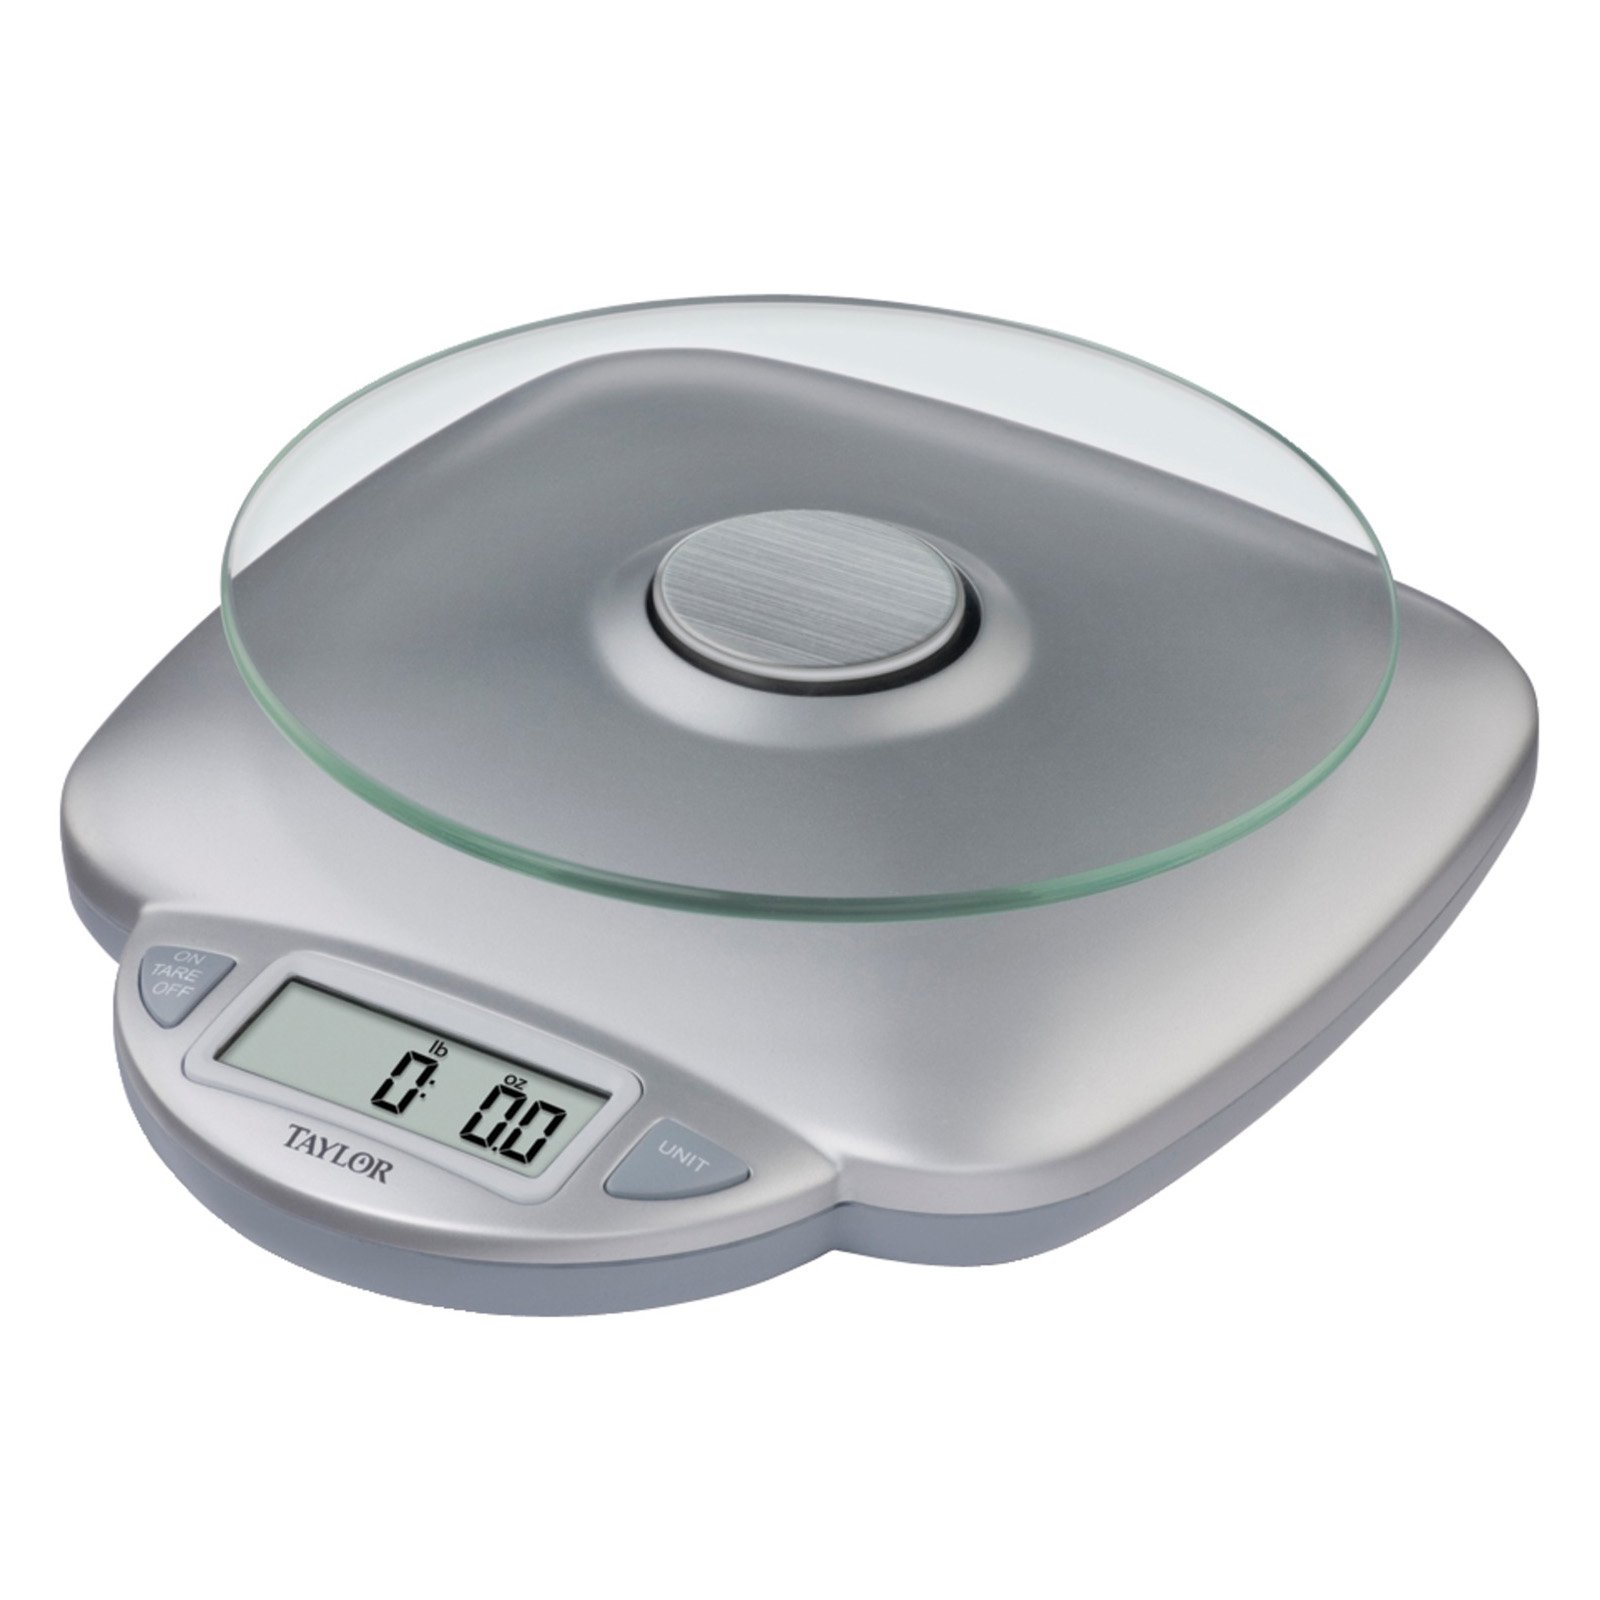 Taylor 3842 Digital Food Scale | Products in 2019 | Digital ...